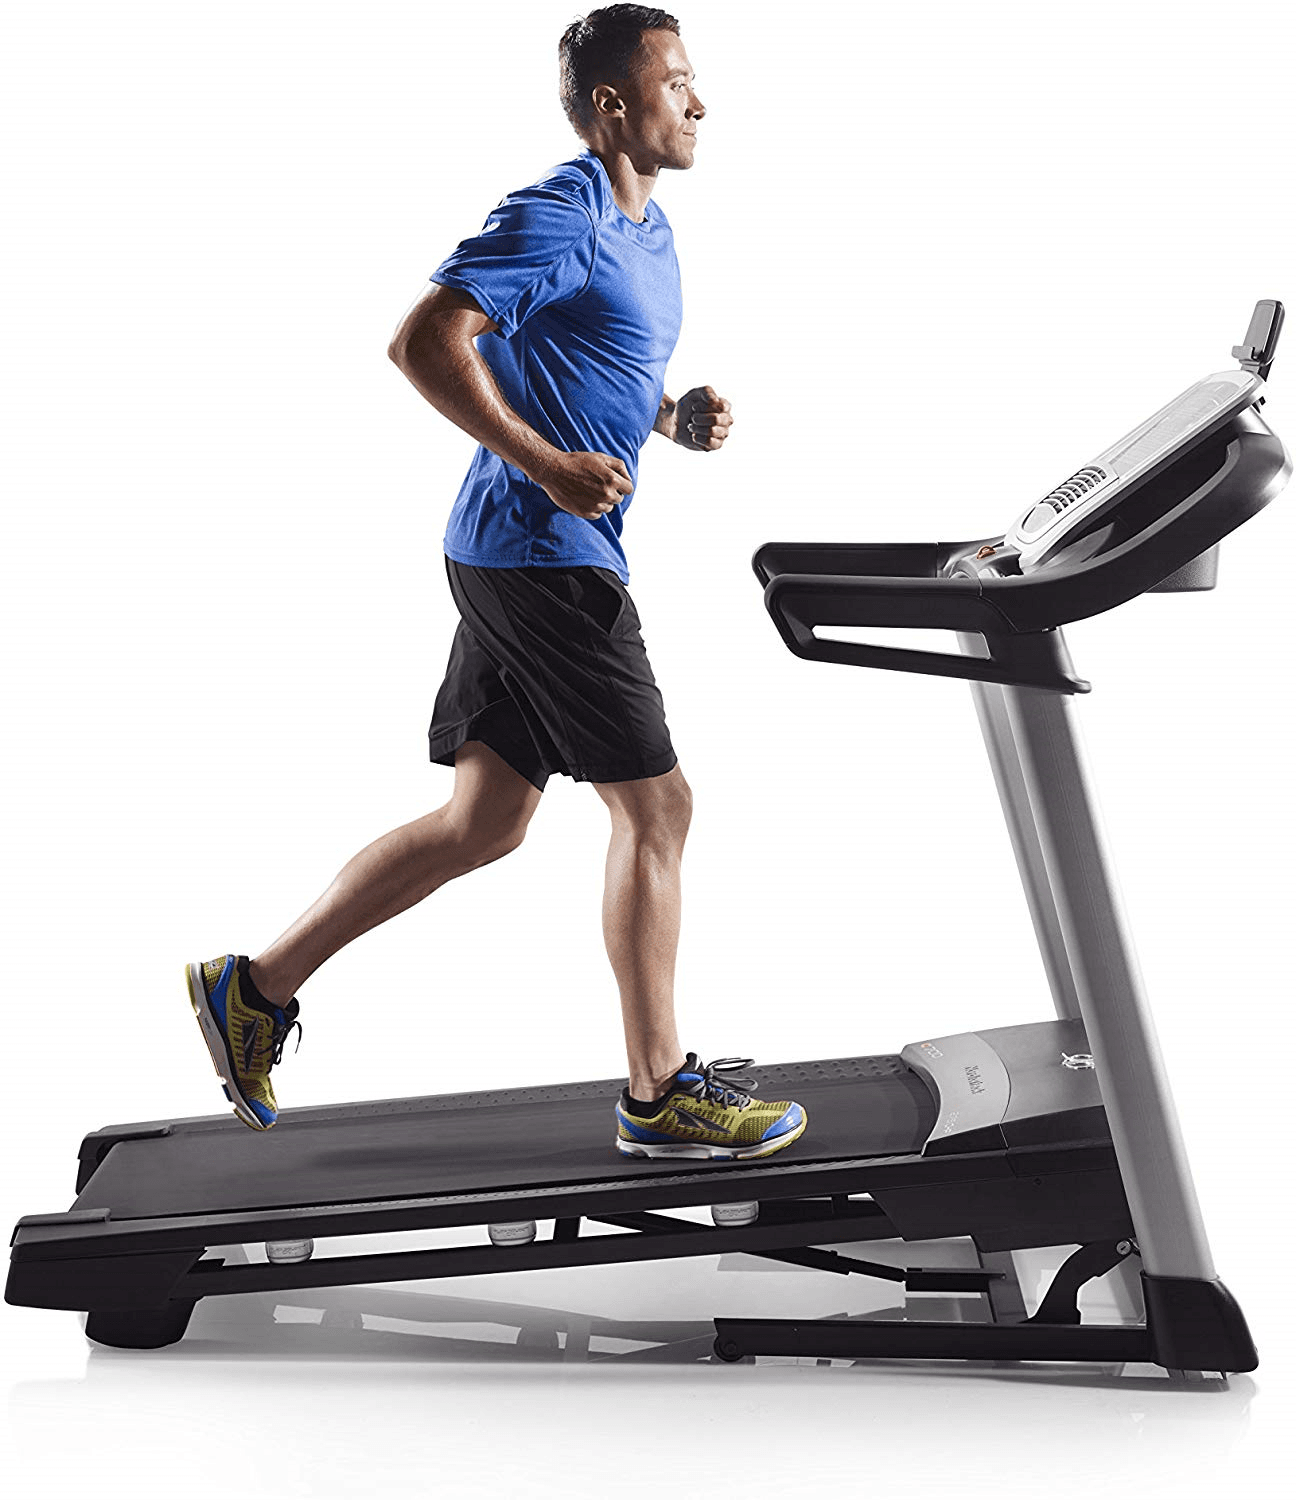 A fit man in athletic attire running on the C 700 treadmill